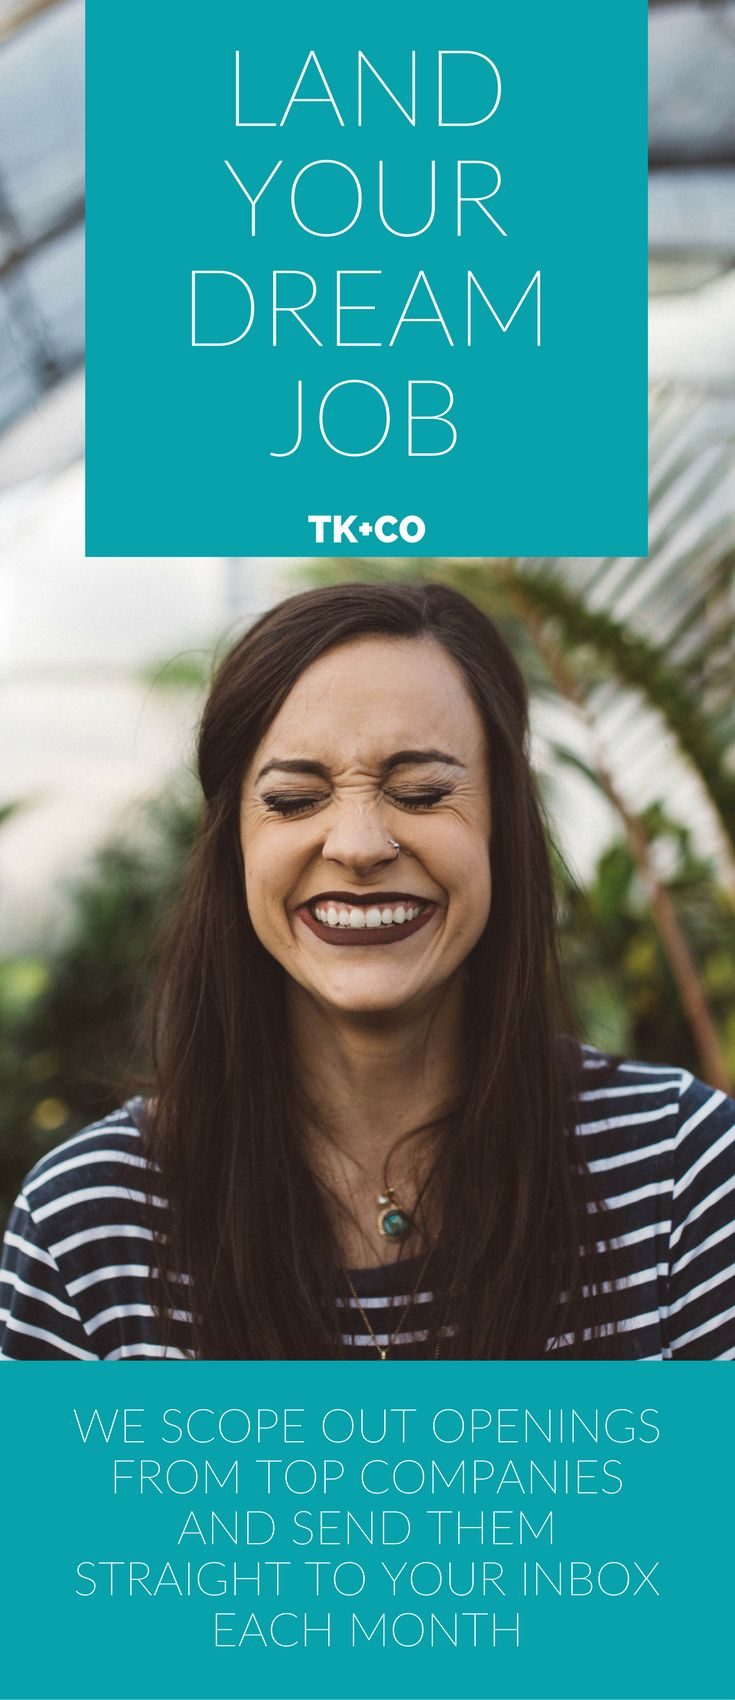 The first step in landing your dream job is finding it right? We got you. Dream Job | Job Love | Finding Your Passion | Job Search | Job Search Tips | Careers | Jobs https://tarynkristineco.lpages.co/dream-job-alert-opt-in/